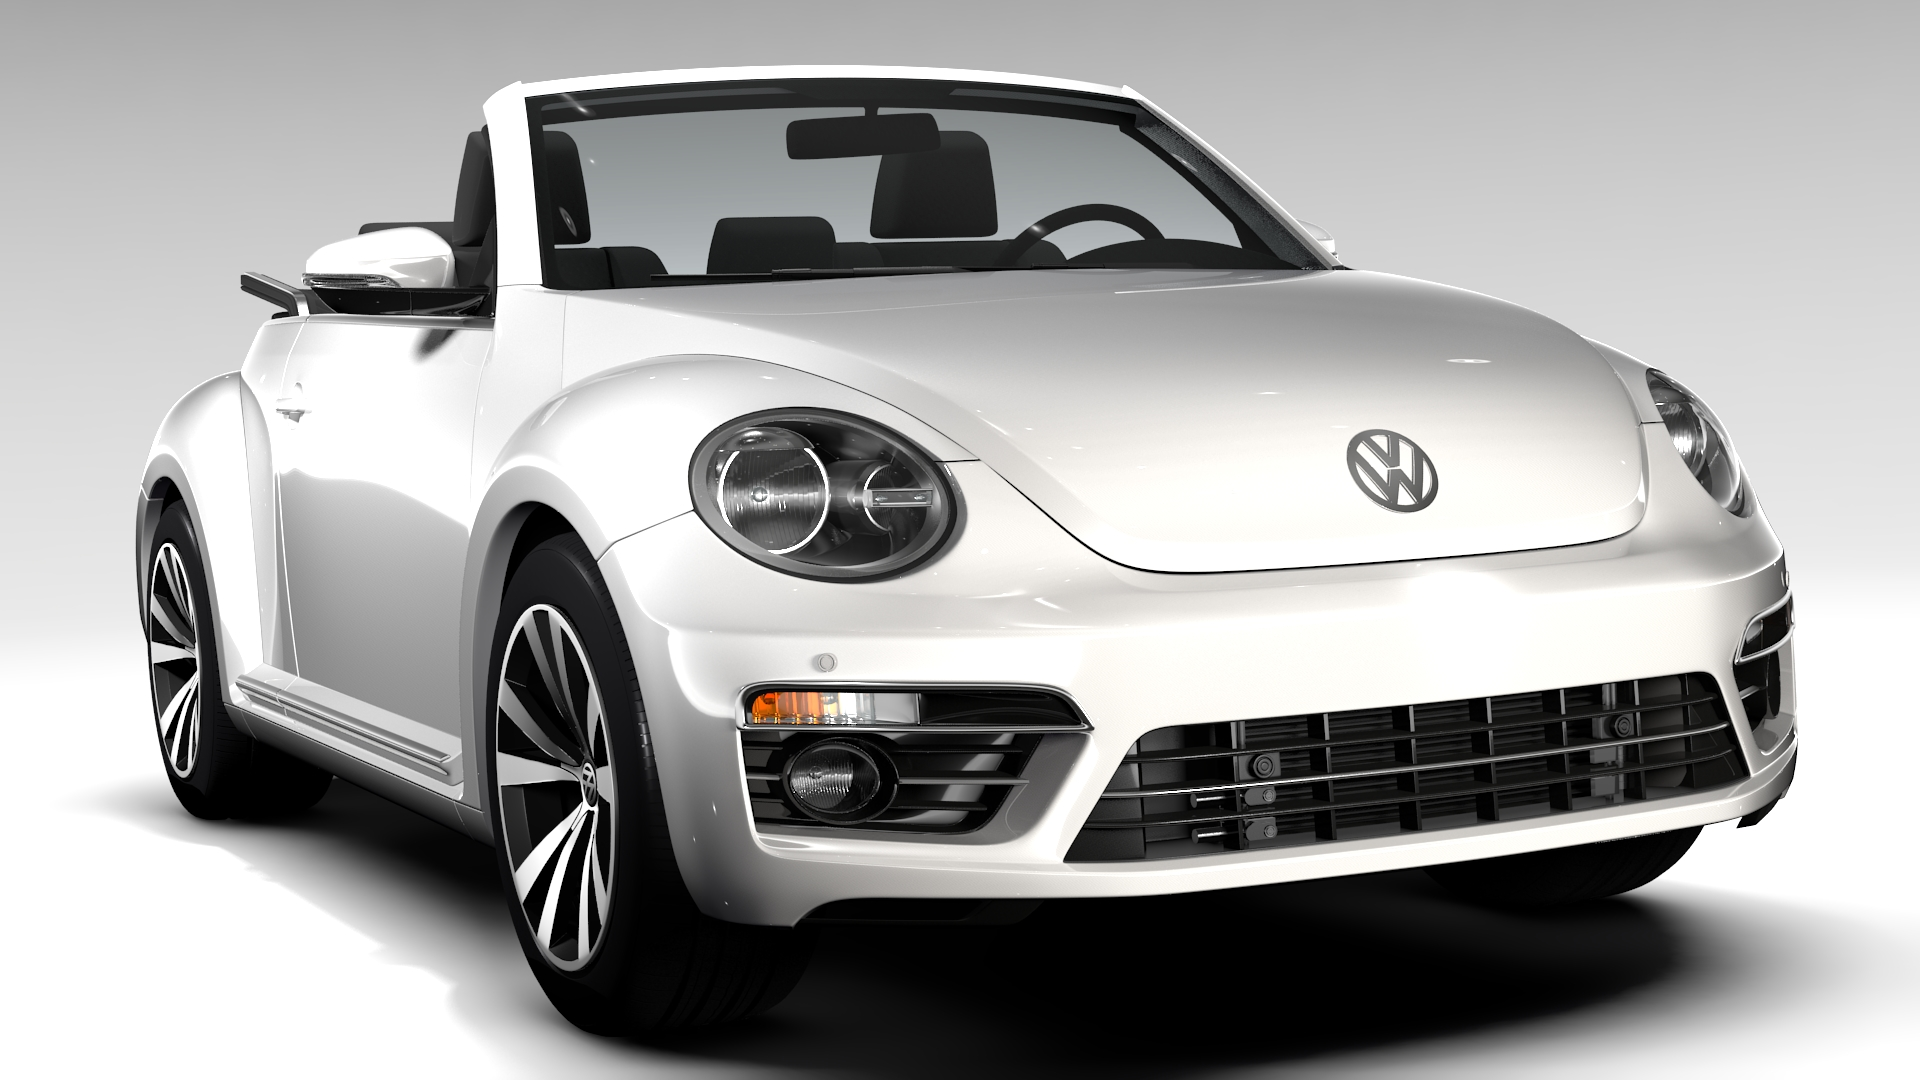 vw beetle cabriolet 2017 3d model buy vw beetle cabriolet 2017 3d model flatpyramid. Black Bedroom Furniture Sets. Home Design Ideas